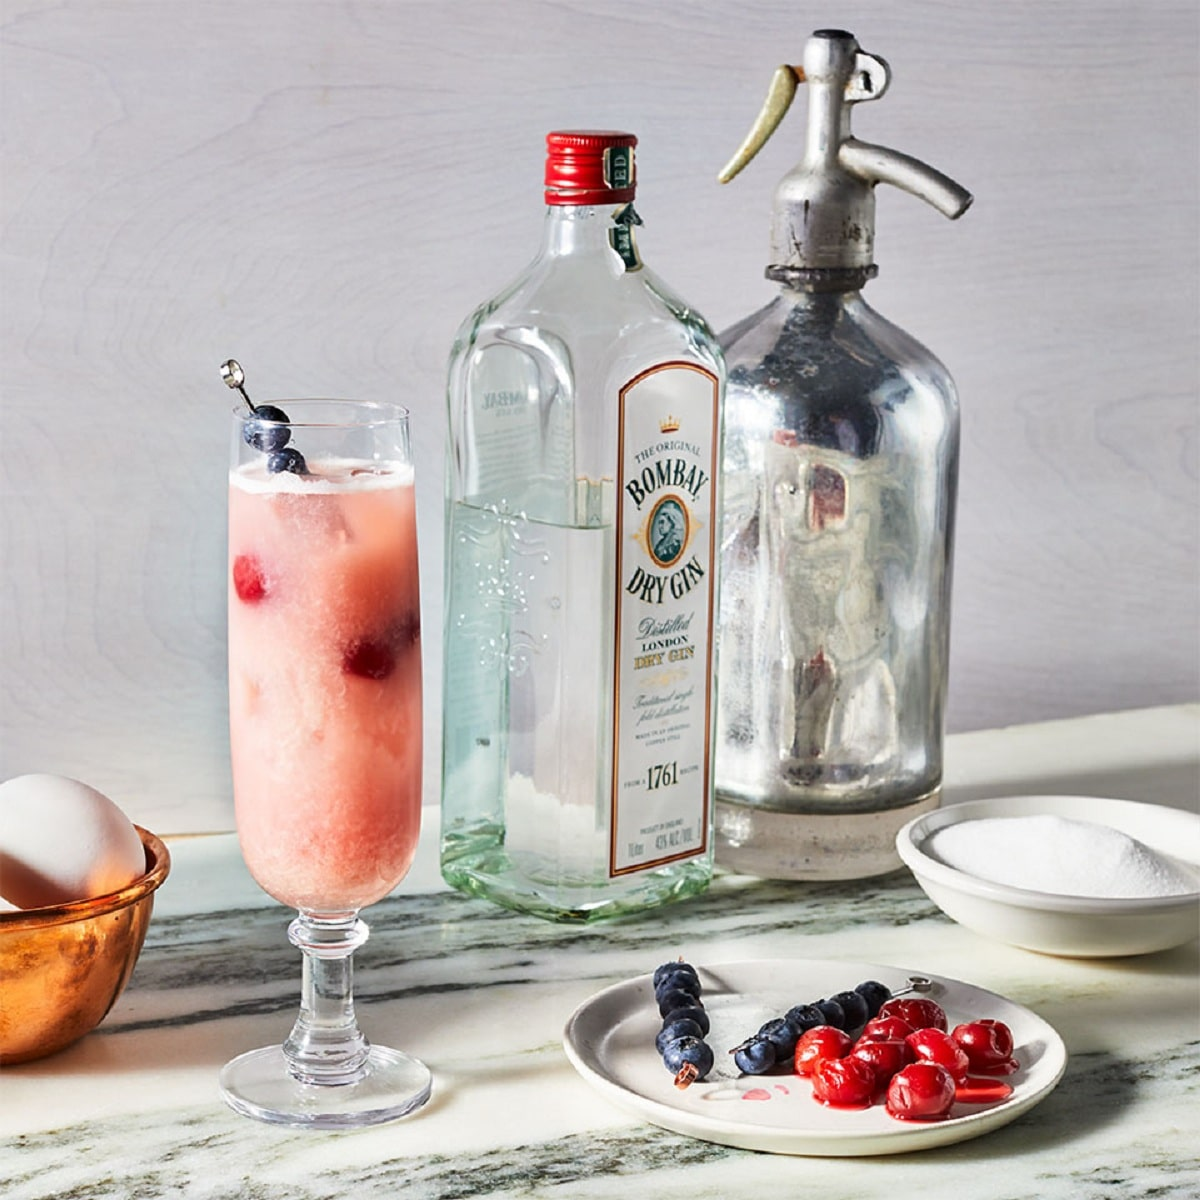 Tall glass with pink drink and blueberries next to bottles of gin and plate of berries